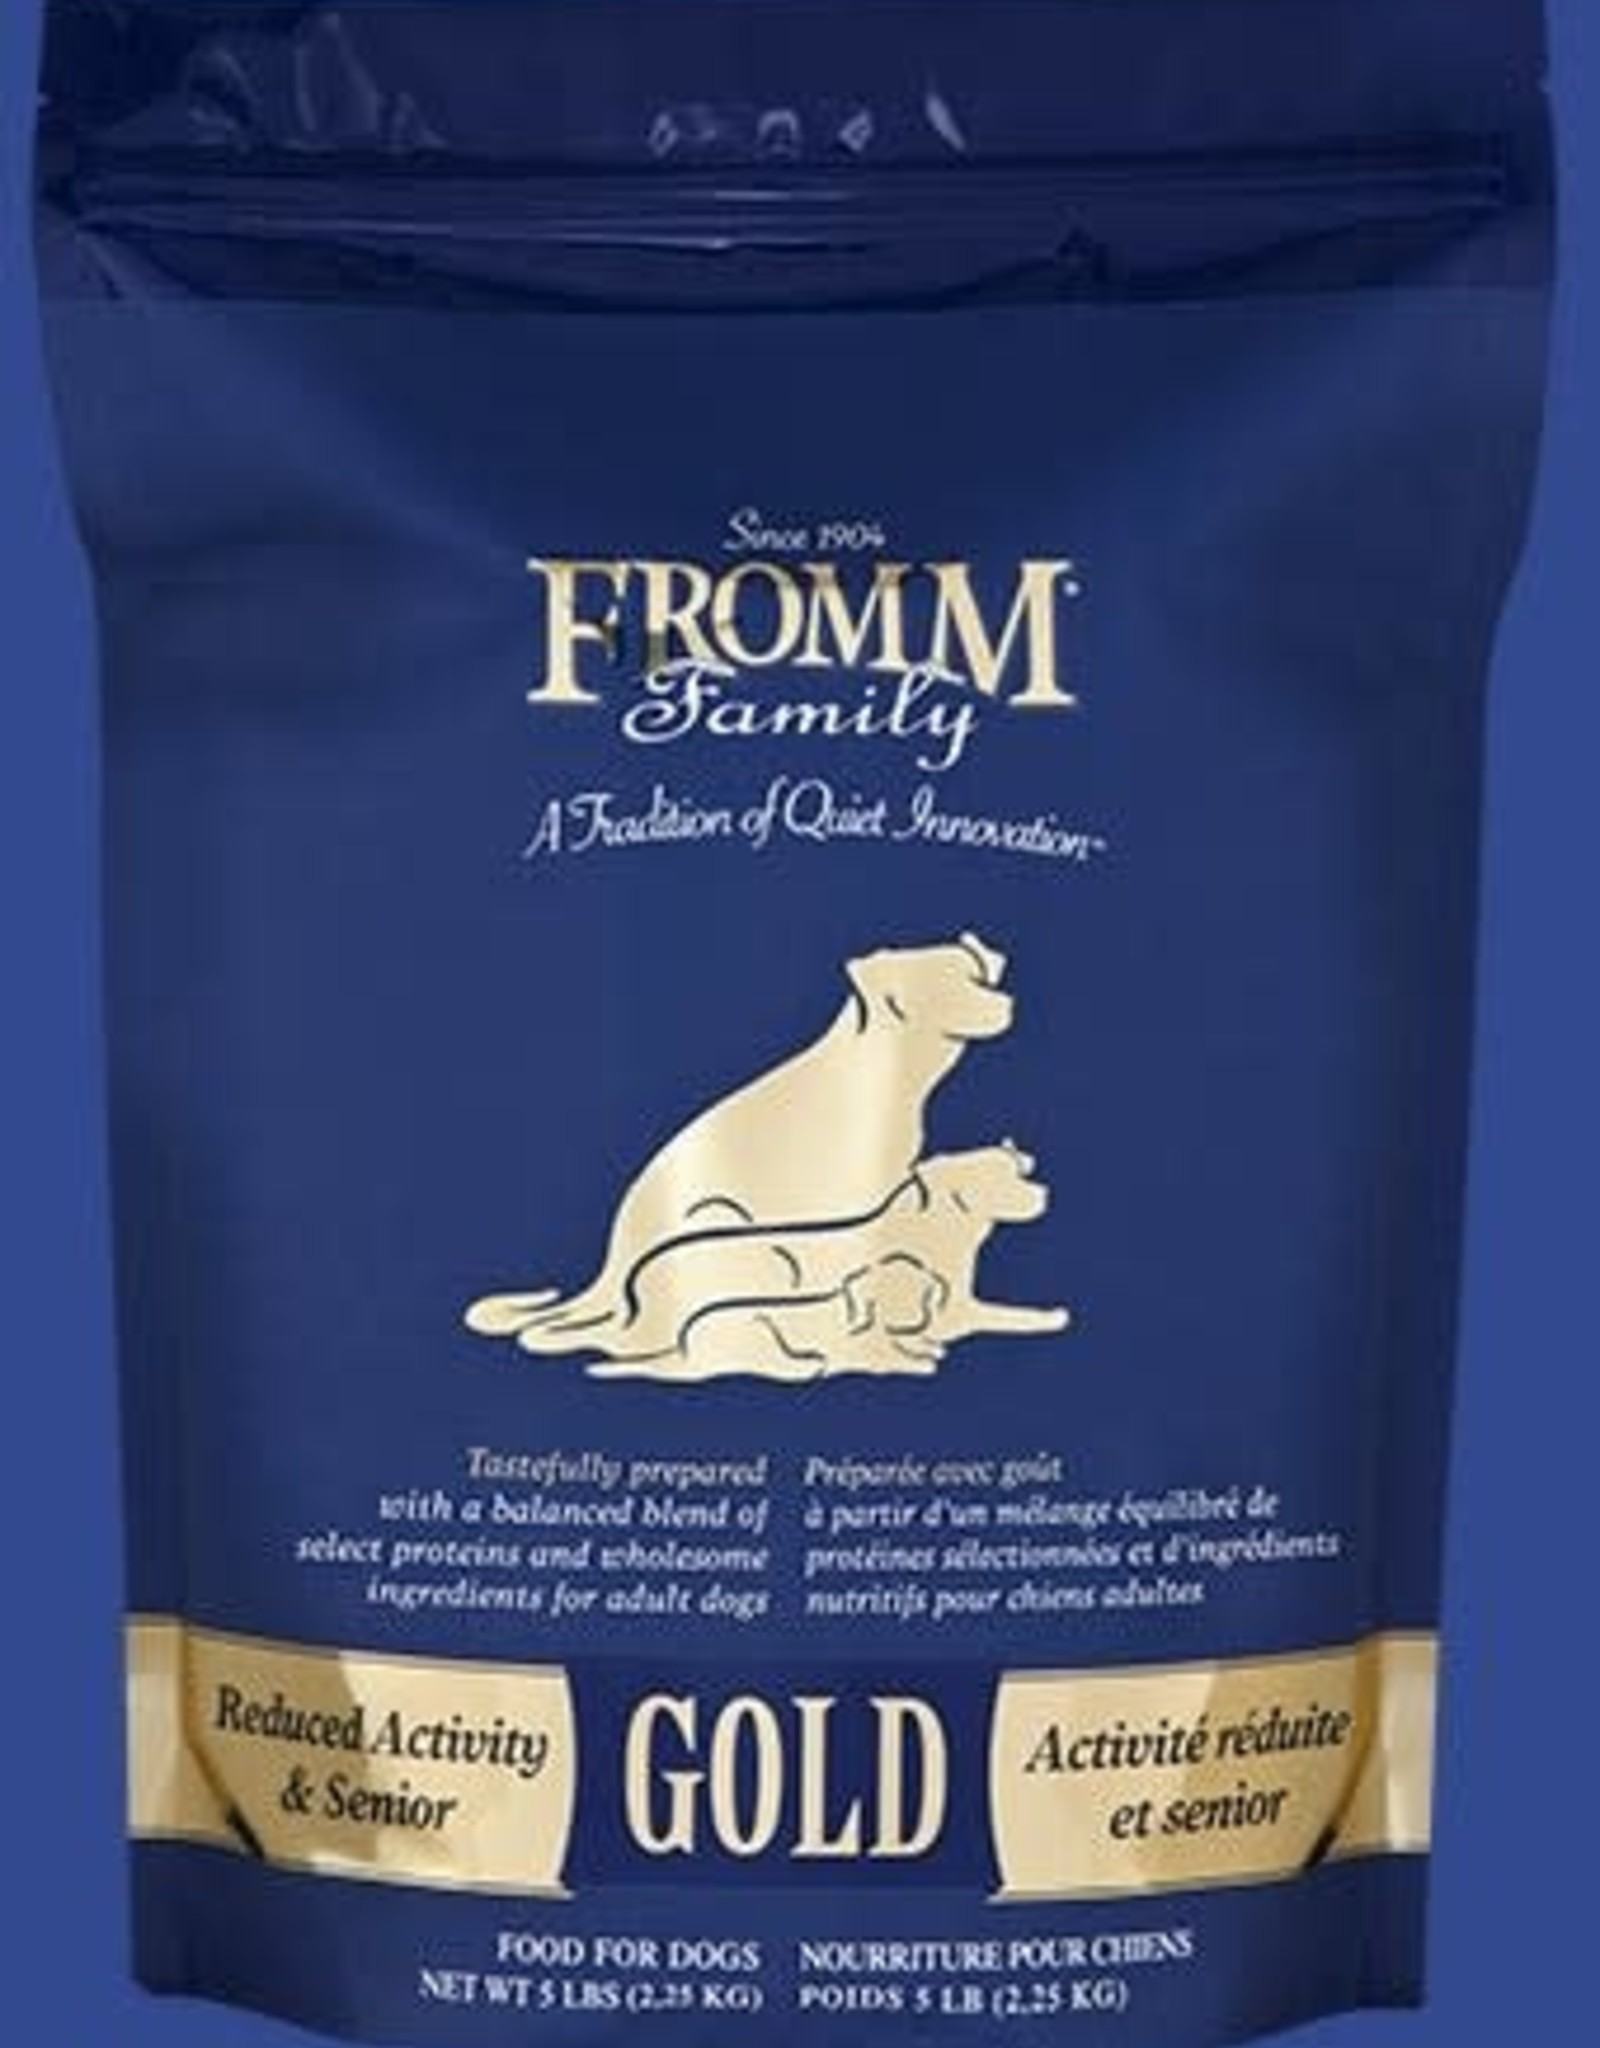 Fromm Dry Dog Food - Gold Reduced Activity & Senior 33LB